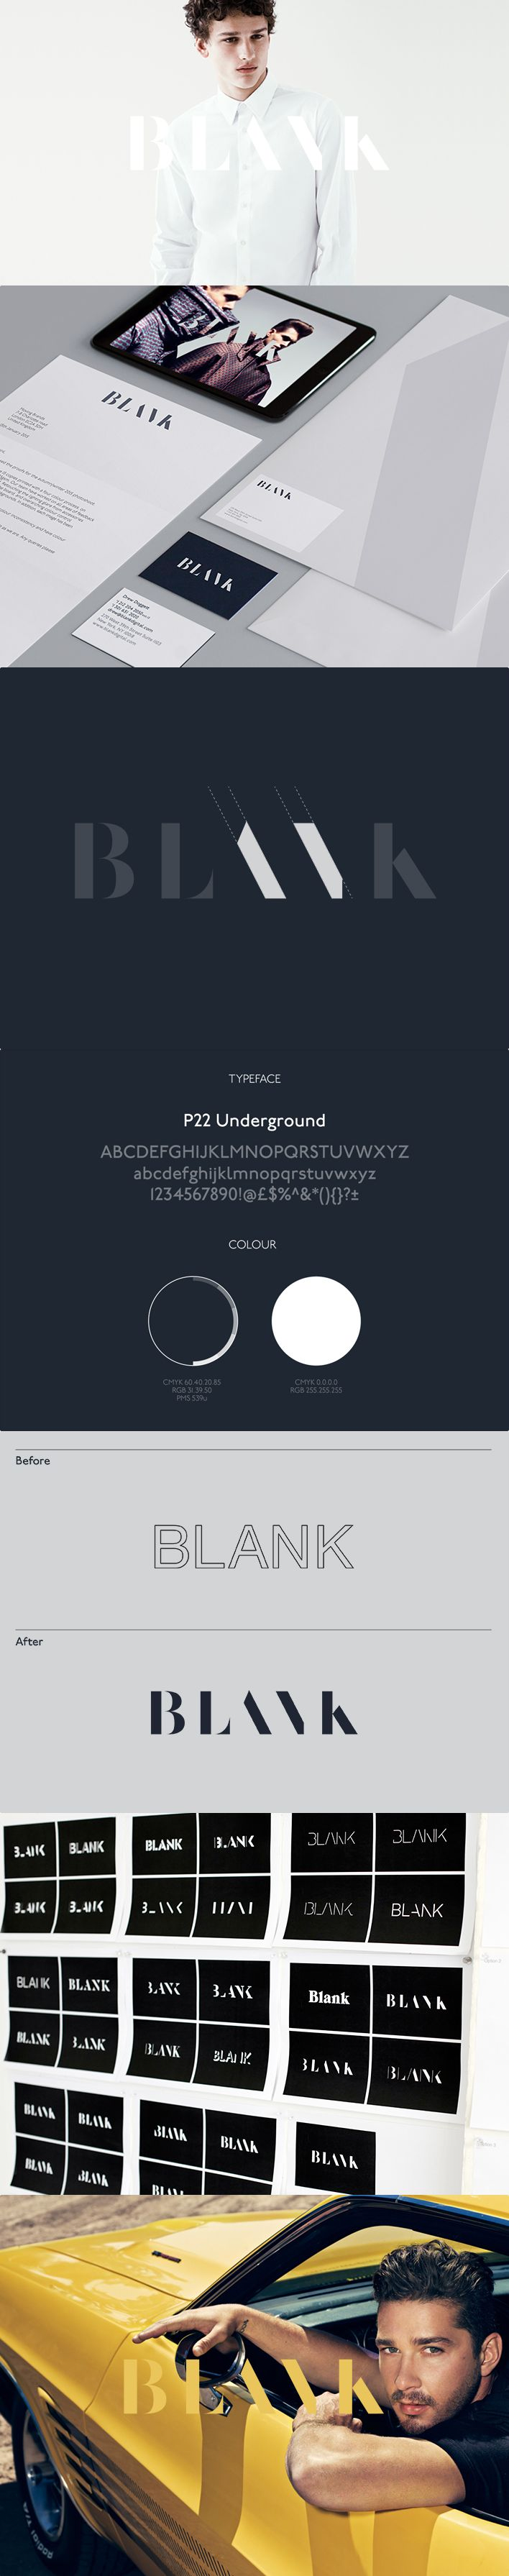 BLANK / by Moving Brands